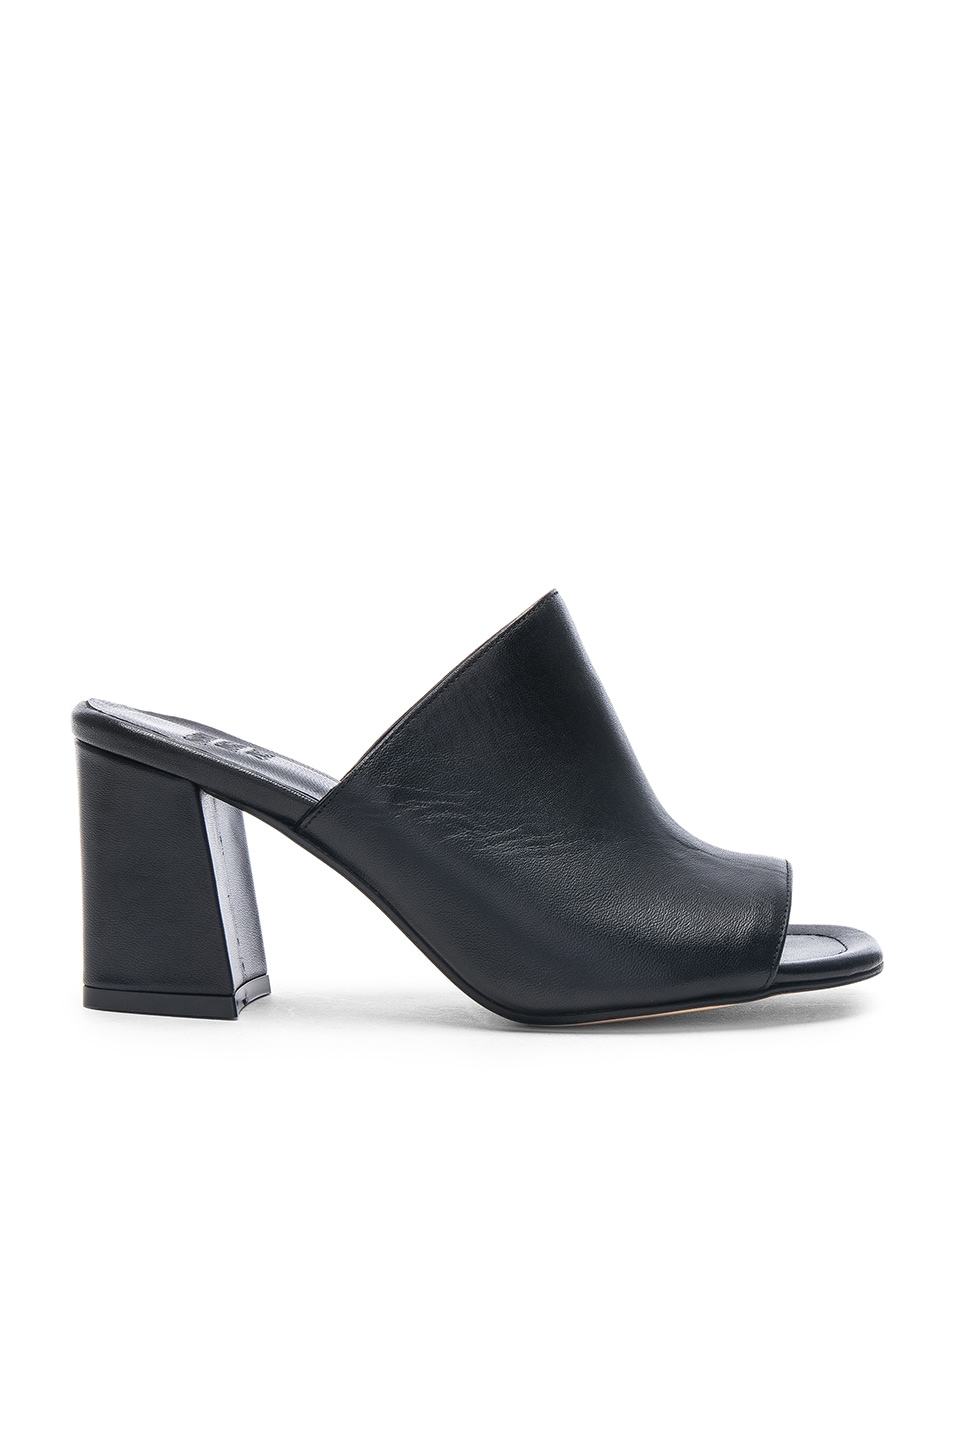 Image 1 of Maryam Nassir Zadeh Leather Penelope Mules in Black Calf